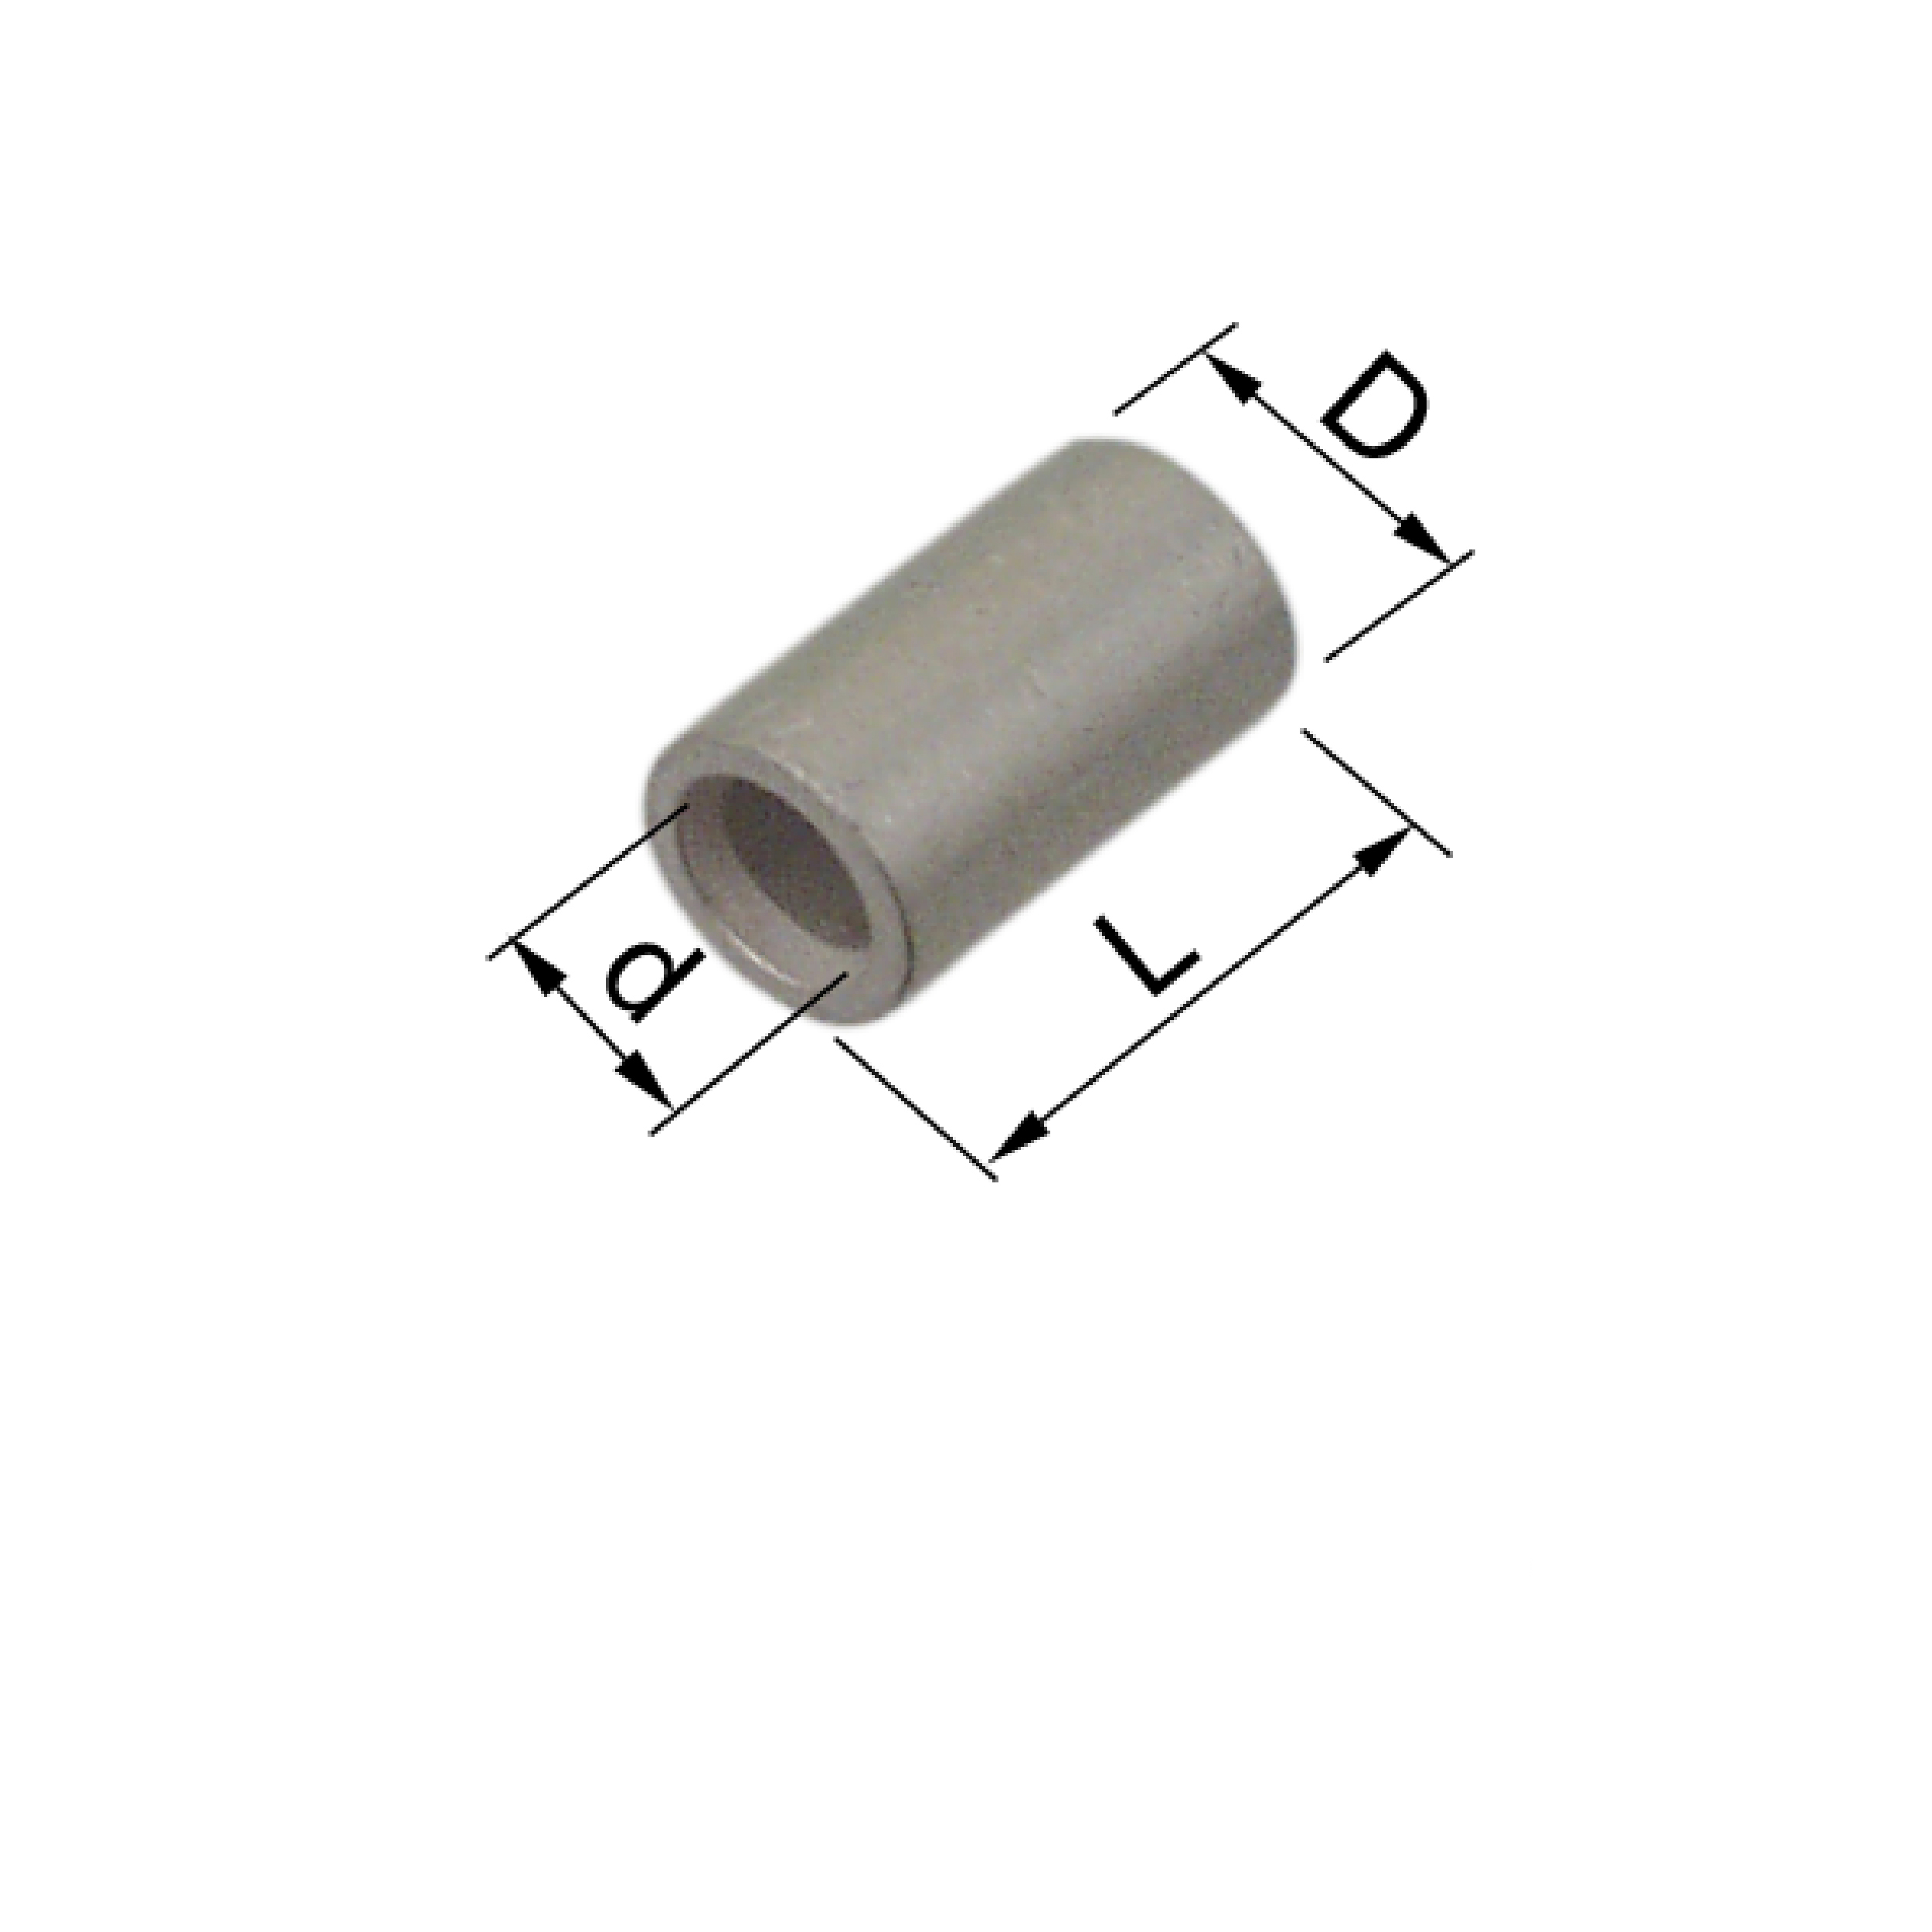 Elpress Copper Parallel Connectors for total cross section areas 0.5-7.5mm²